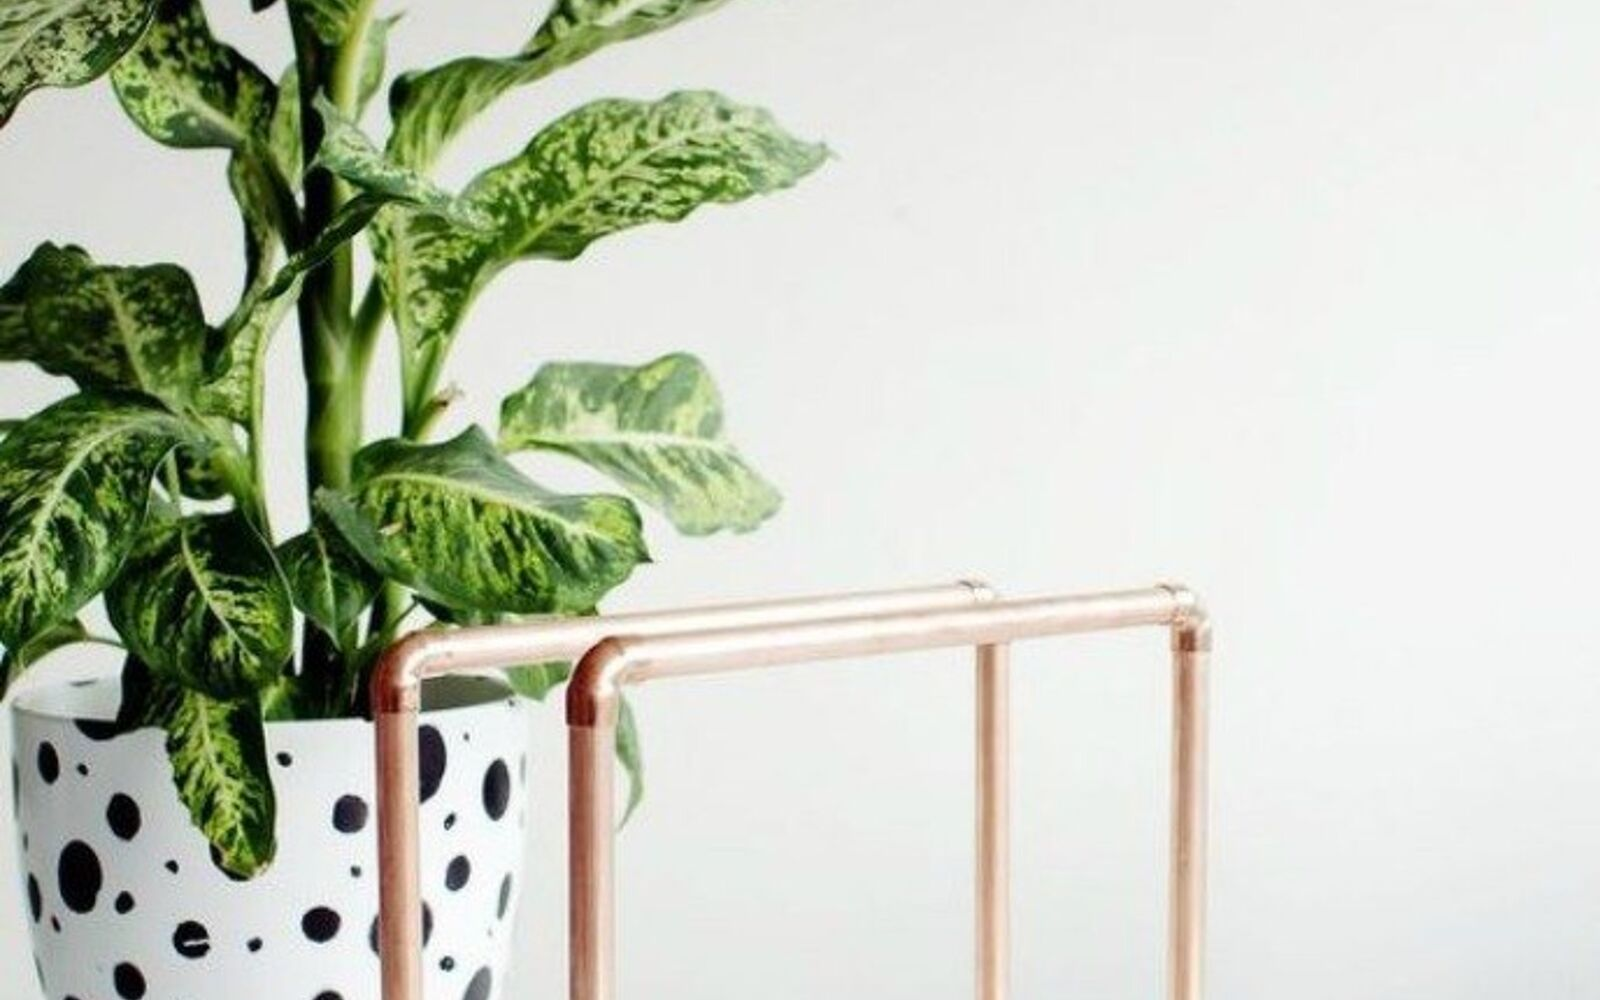 s the 15 coolest ways to reuse pipes in your home decor, Build them into a magazine rack